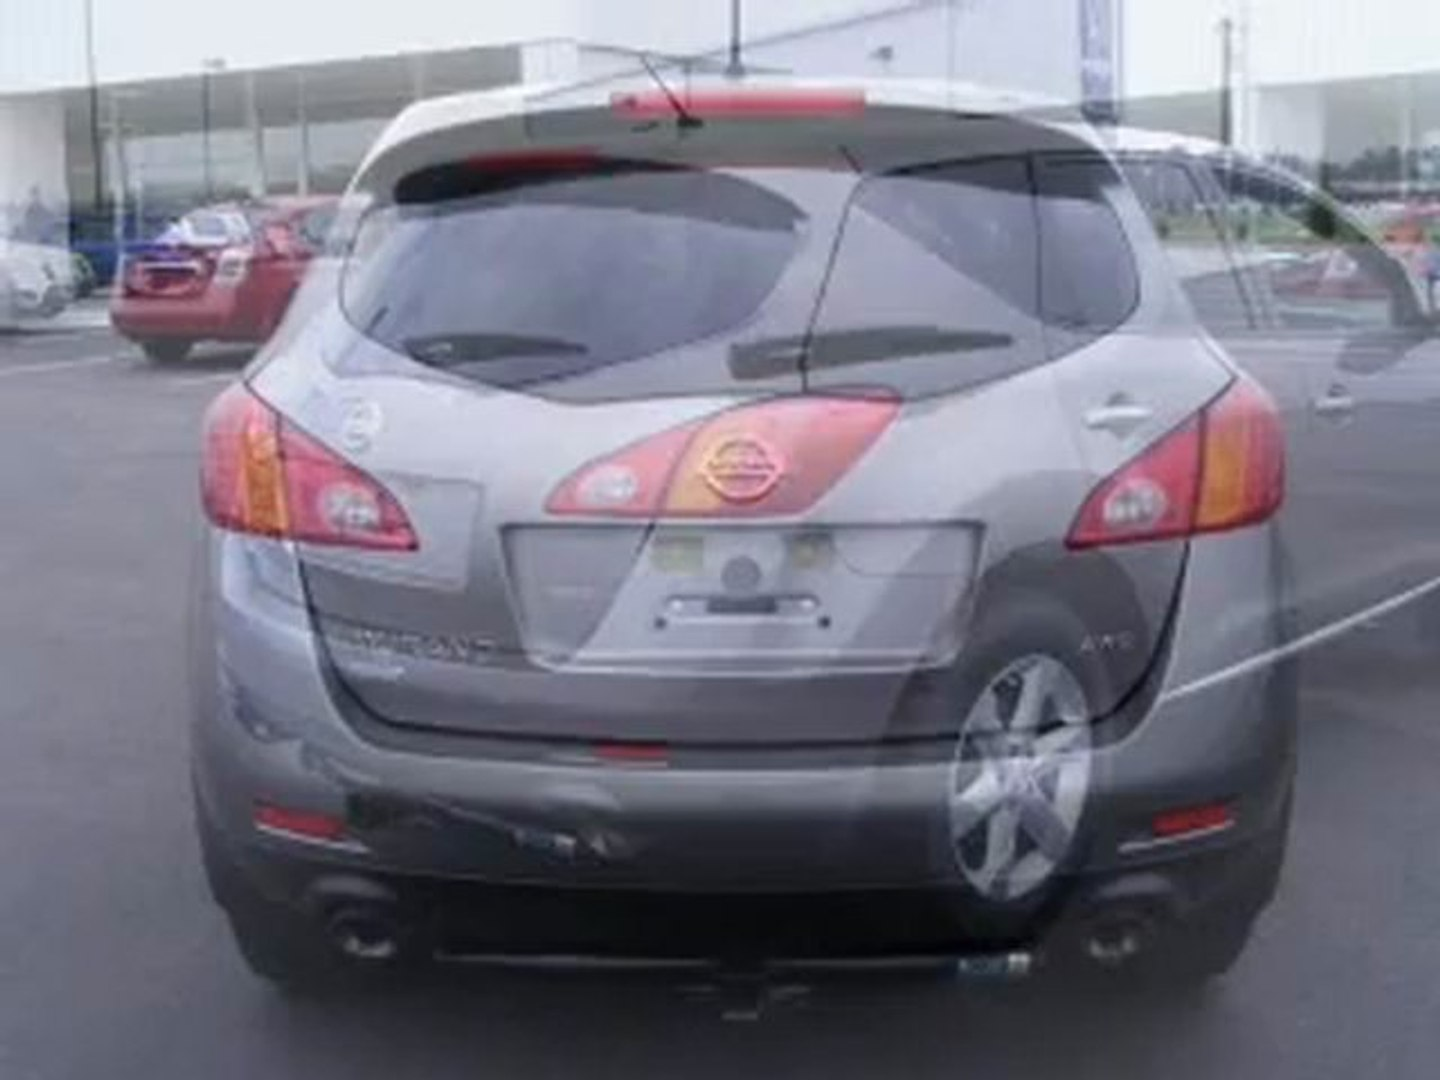 2010 Nissan Murano Goldsboro NC - by EveryCarListed.com